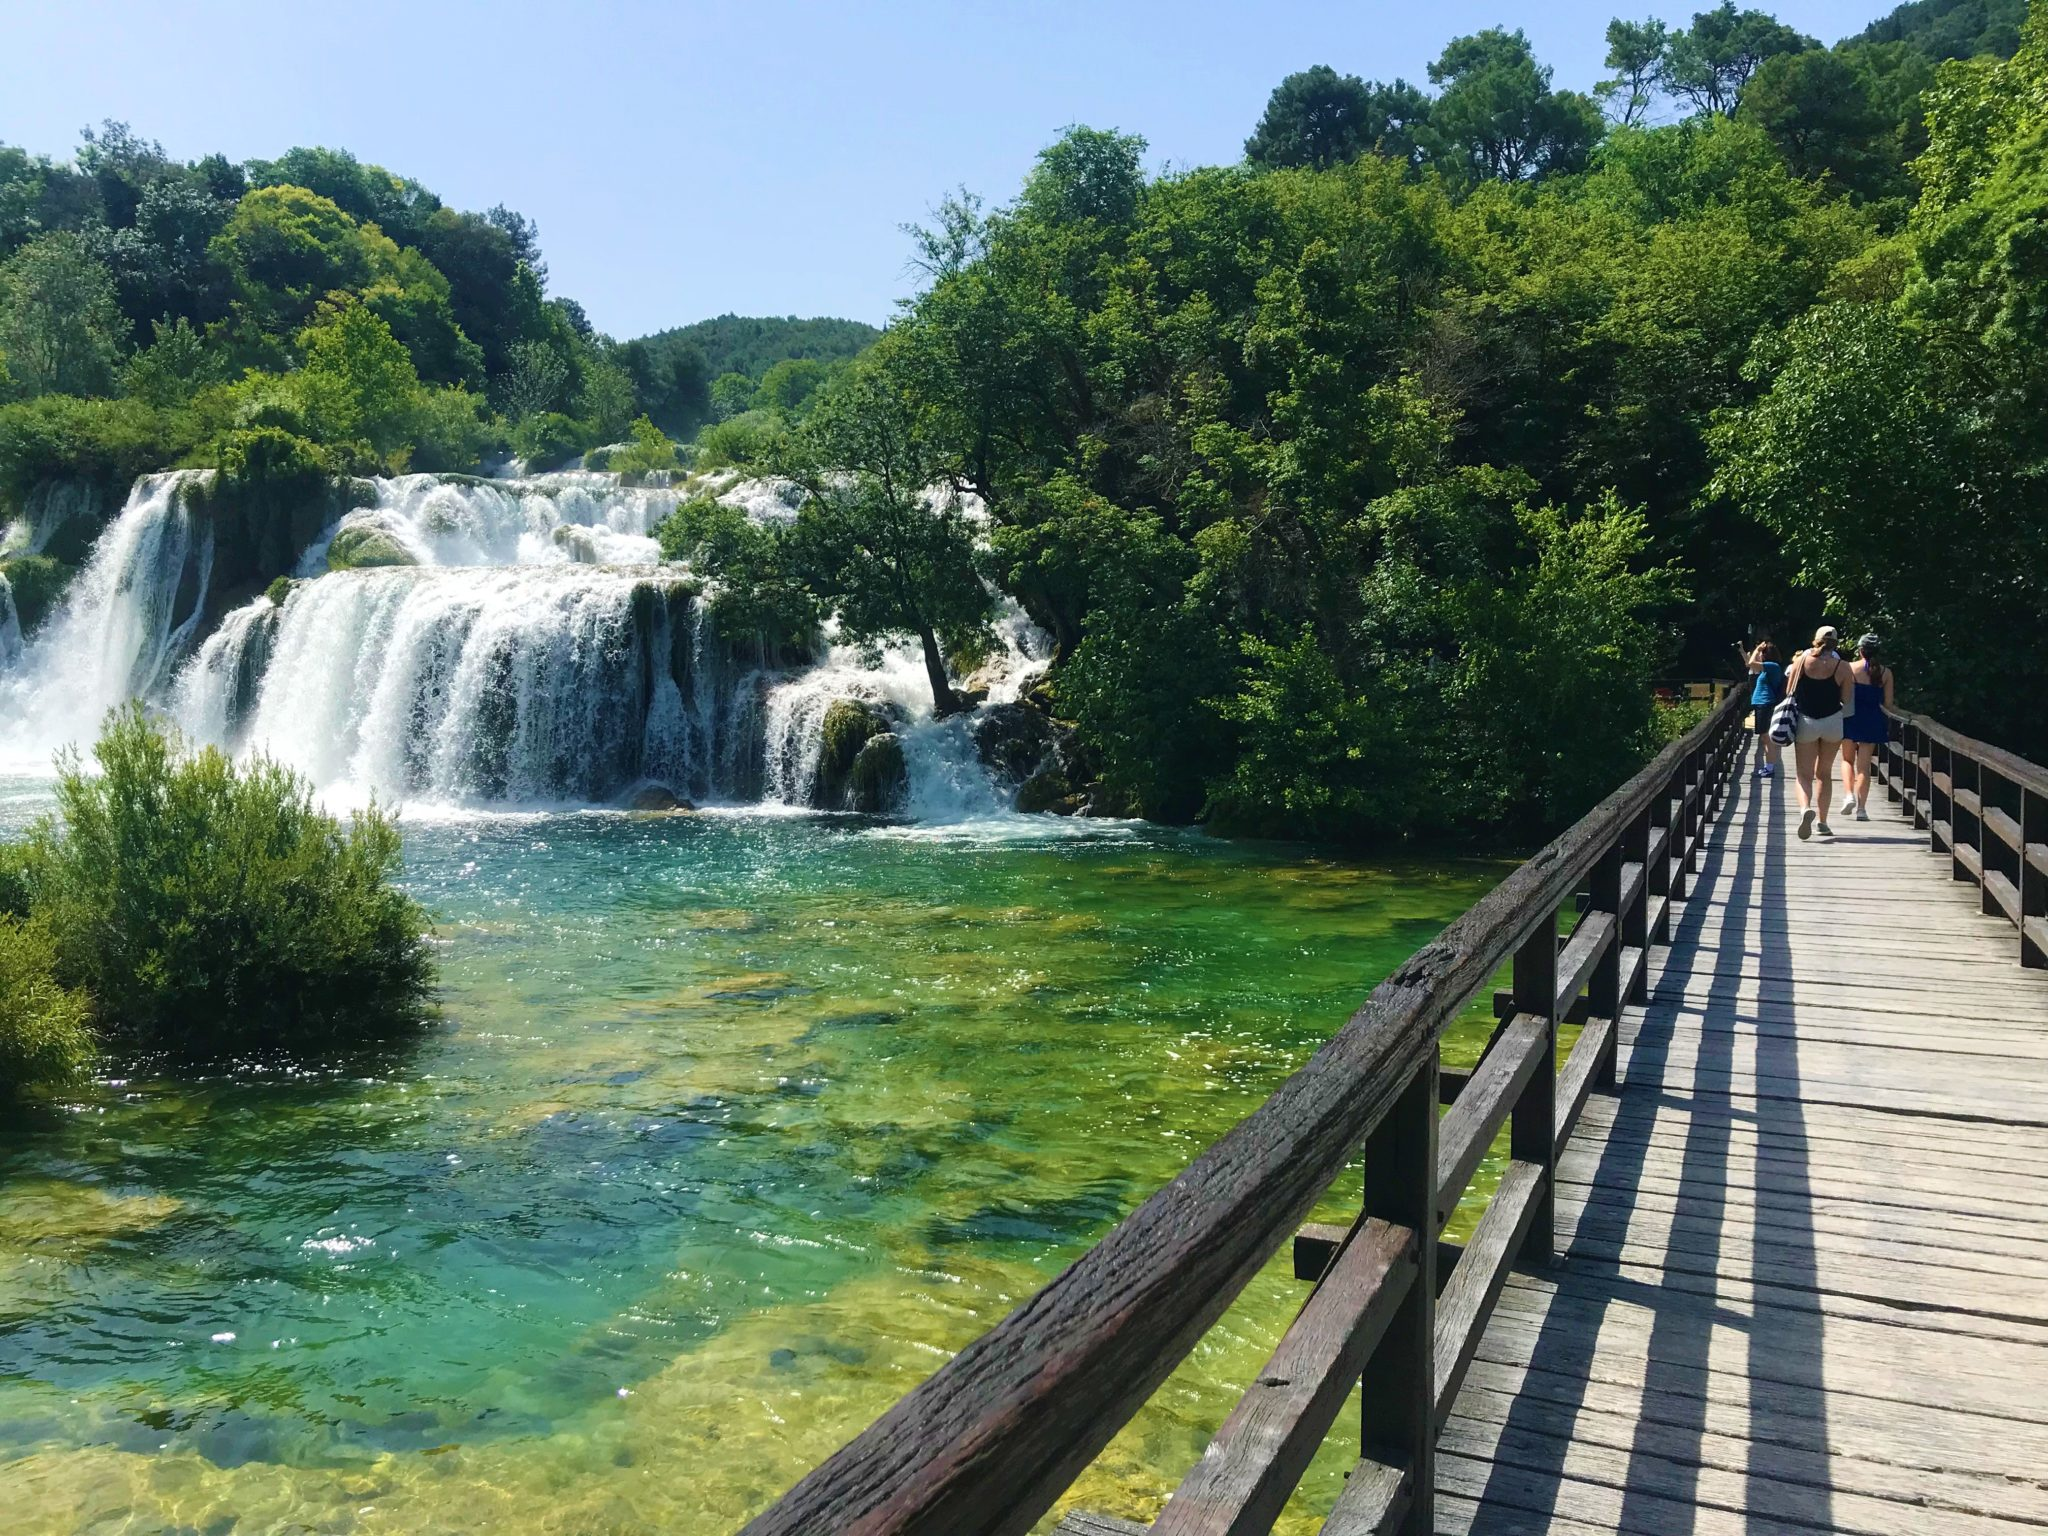 Krka or Plitvice: The Best Croatian Waterfall Experience